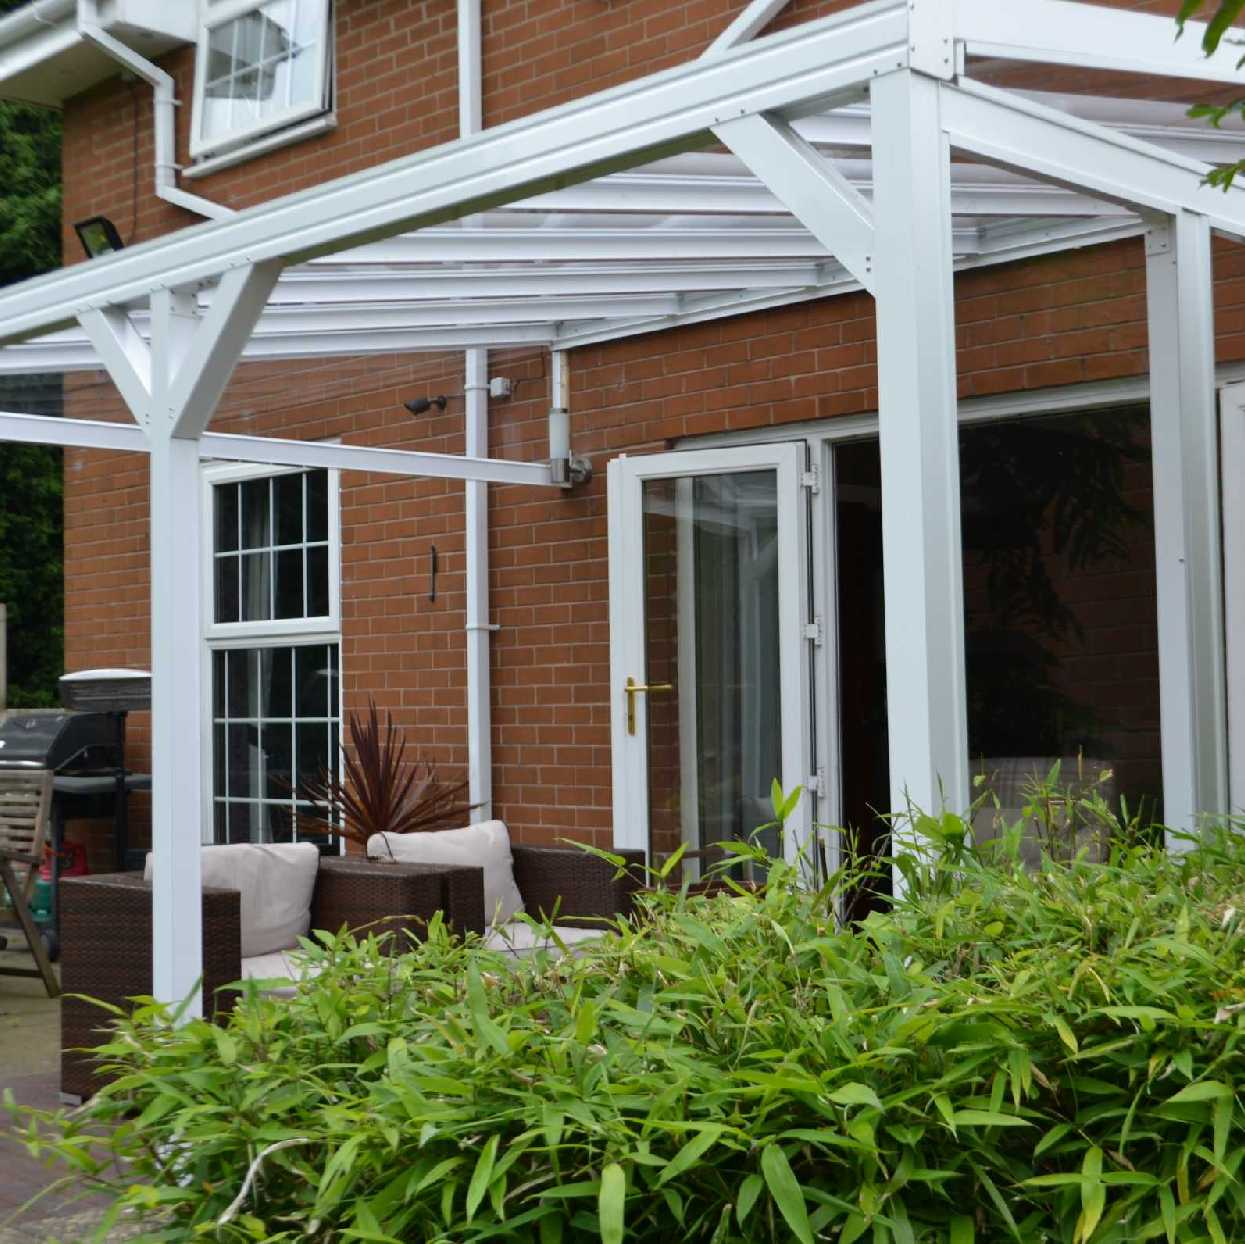 Omega Smart White Lean-To Canopy UNGLAZED for 6mm Glazing - 4.2m (W) x 2.5m (P), (3) Supporting Posts from Omega Build